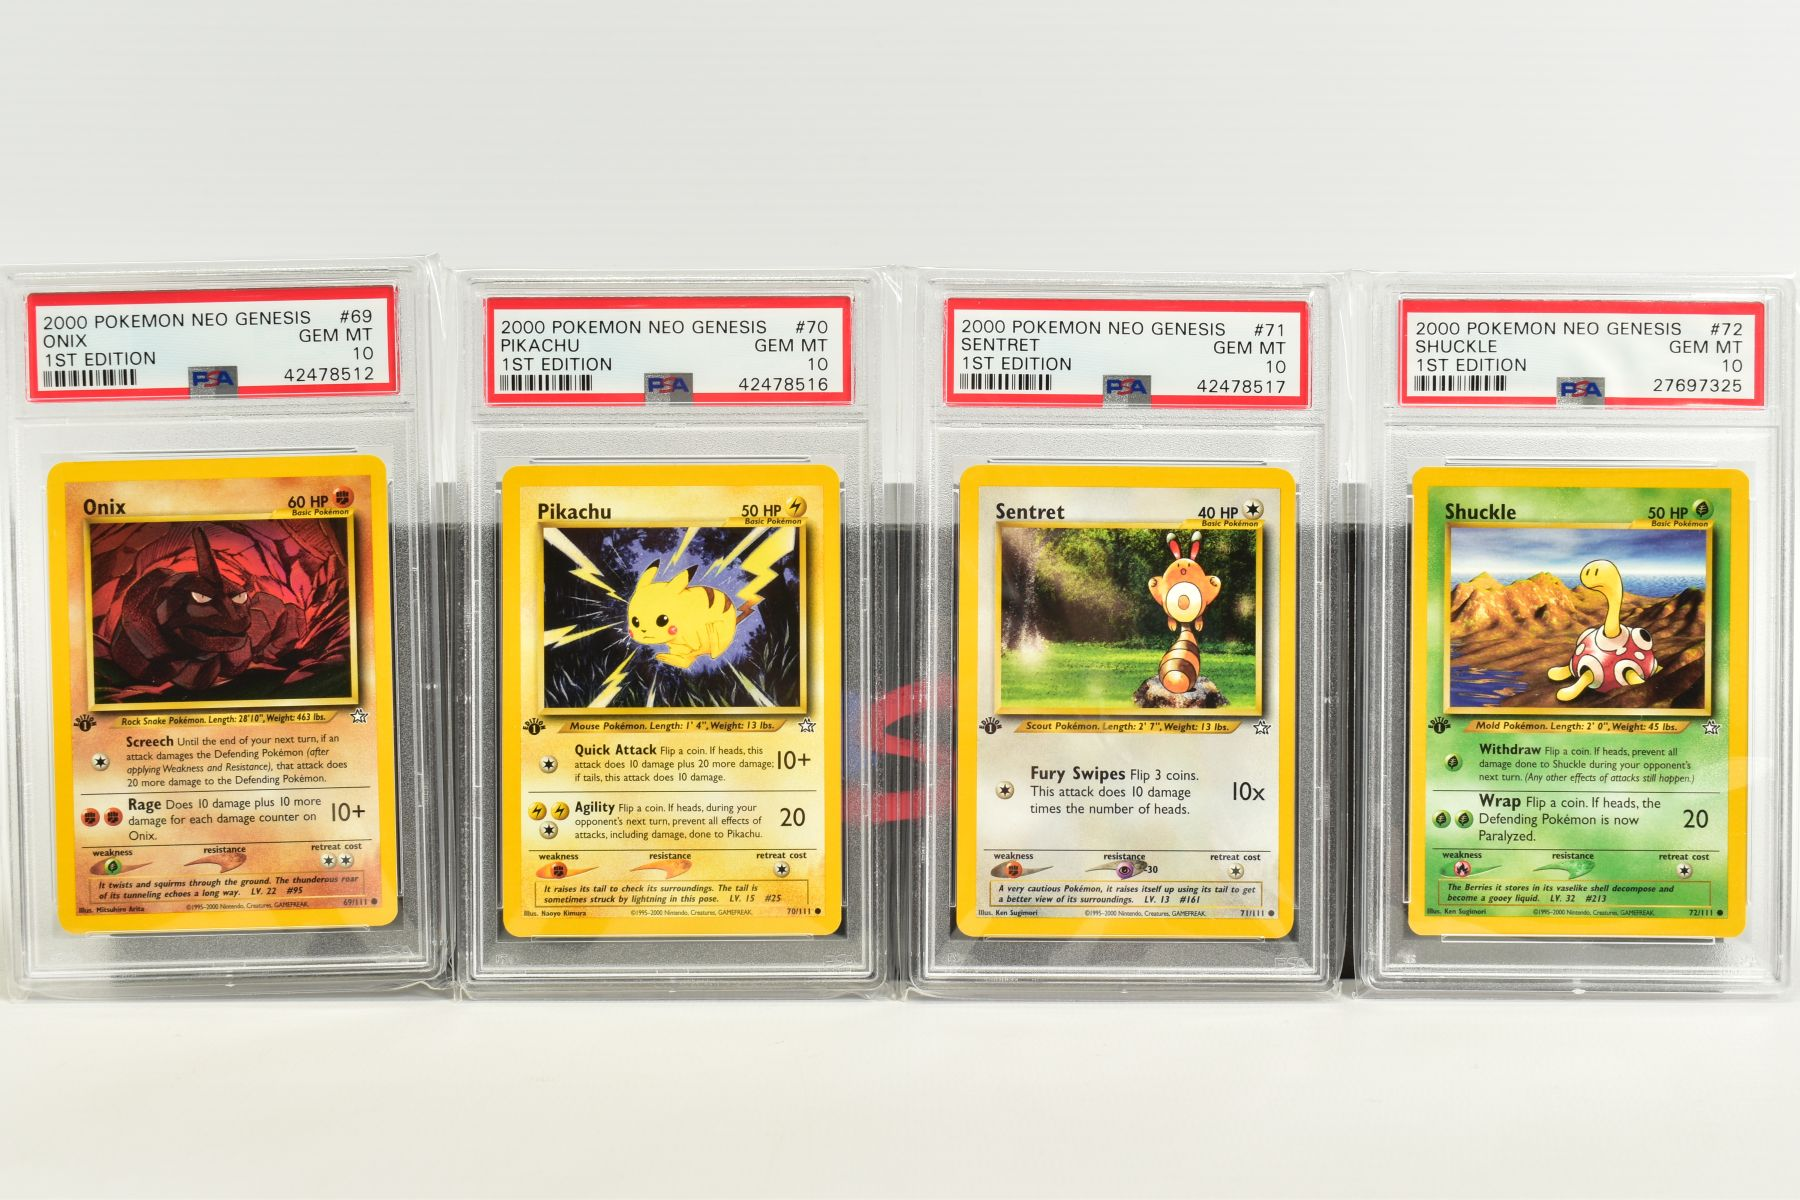 A QUANTITY OF PSA GRADED POKEMON 1ST EDITION NEO GENESIS SET CARDS, all are graded GEM MINT 10 and - Image 14 of 24